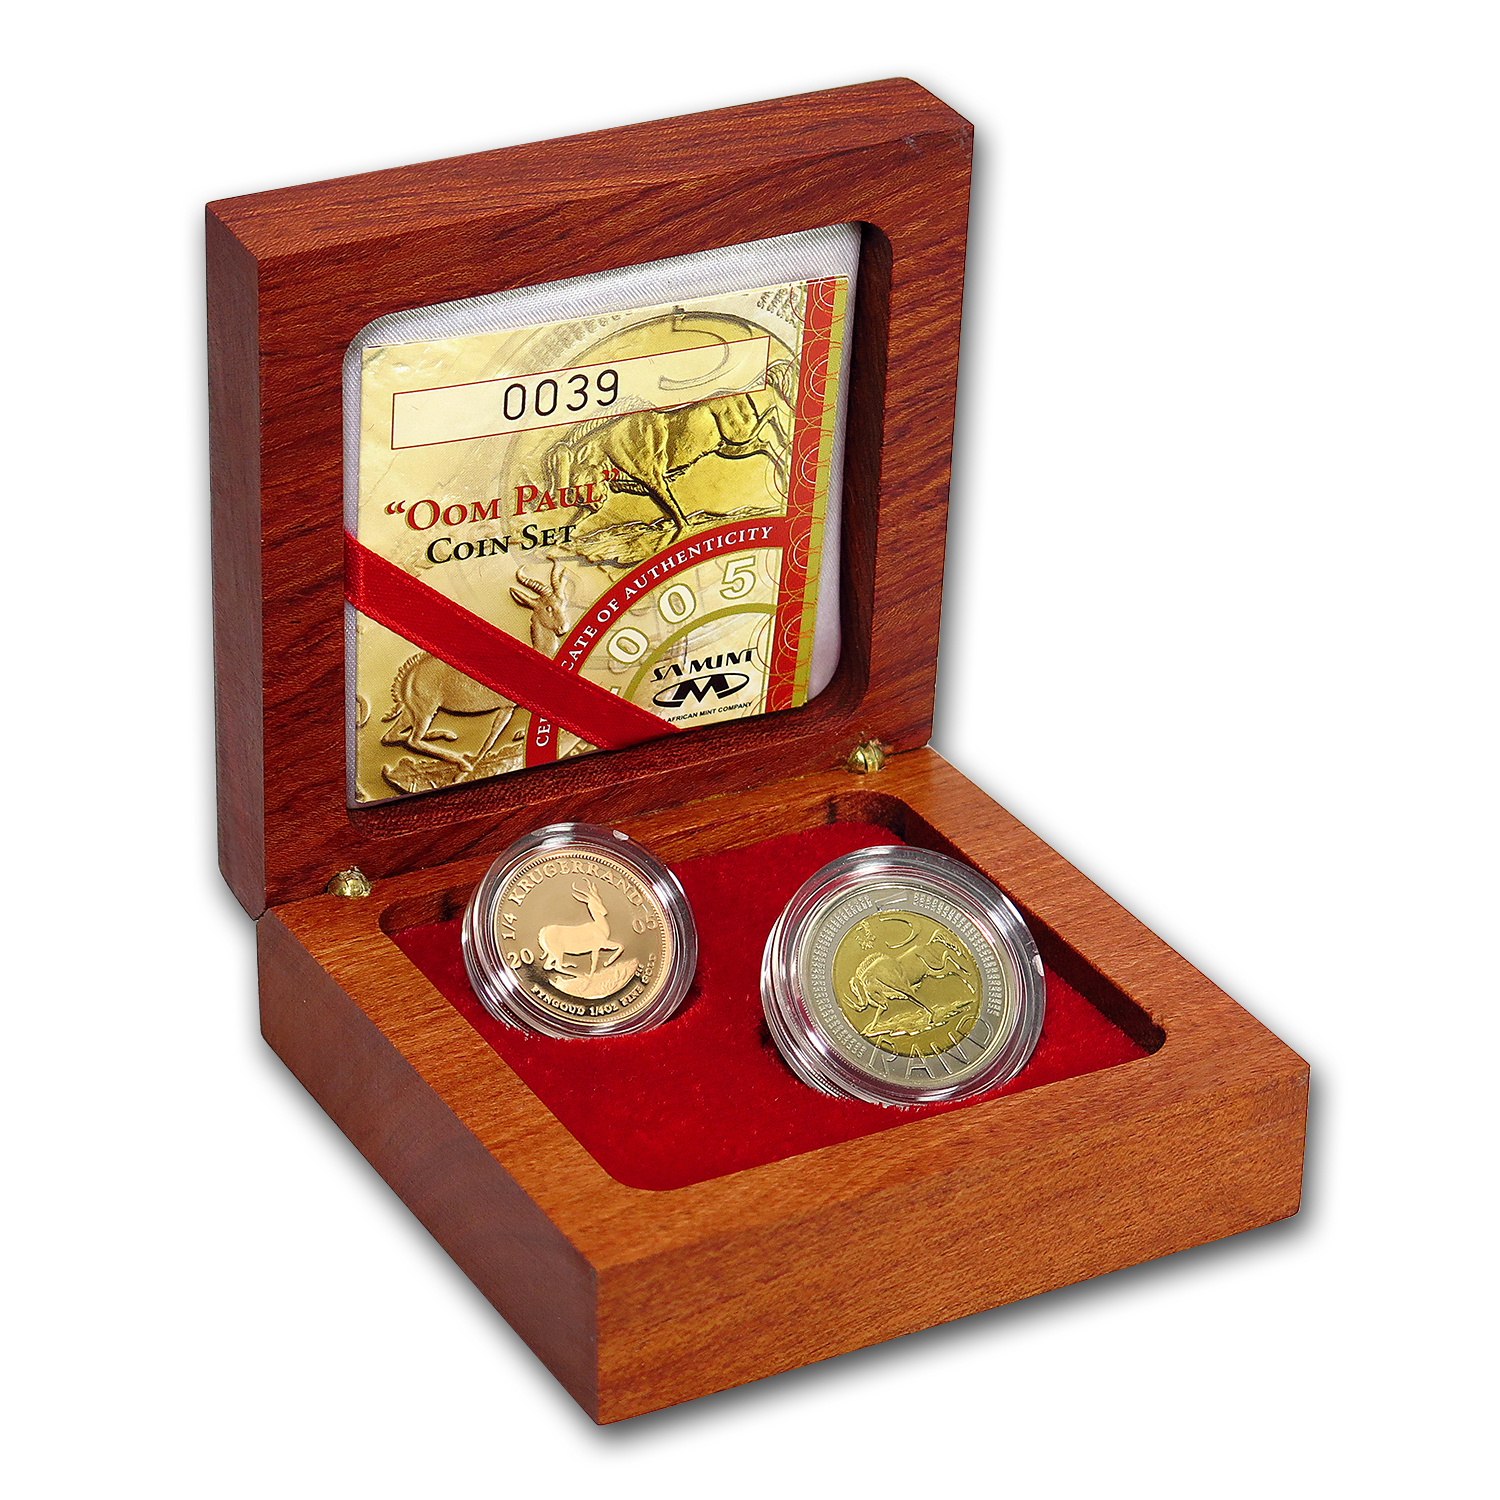 2005 South Africa 2-Coin Gold Oom Paul Proof Set (w/Box & COA)